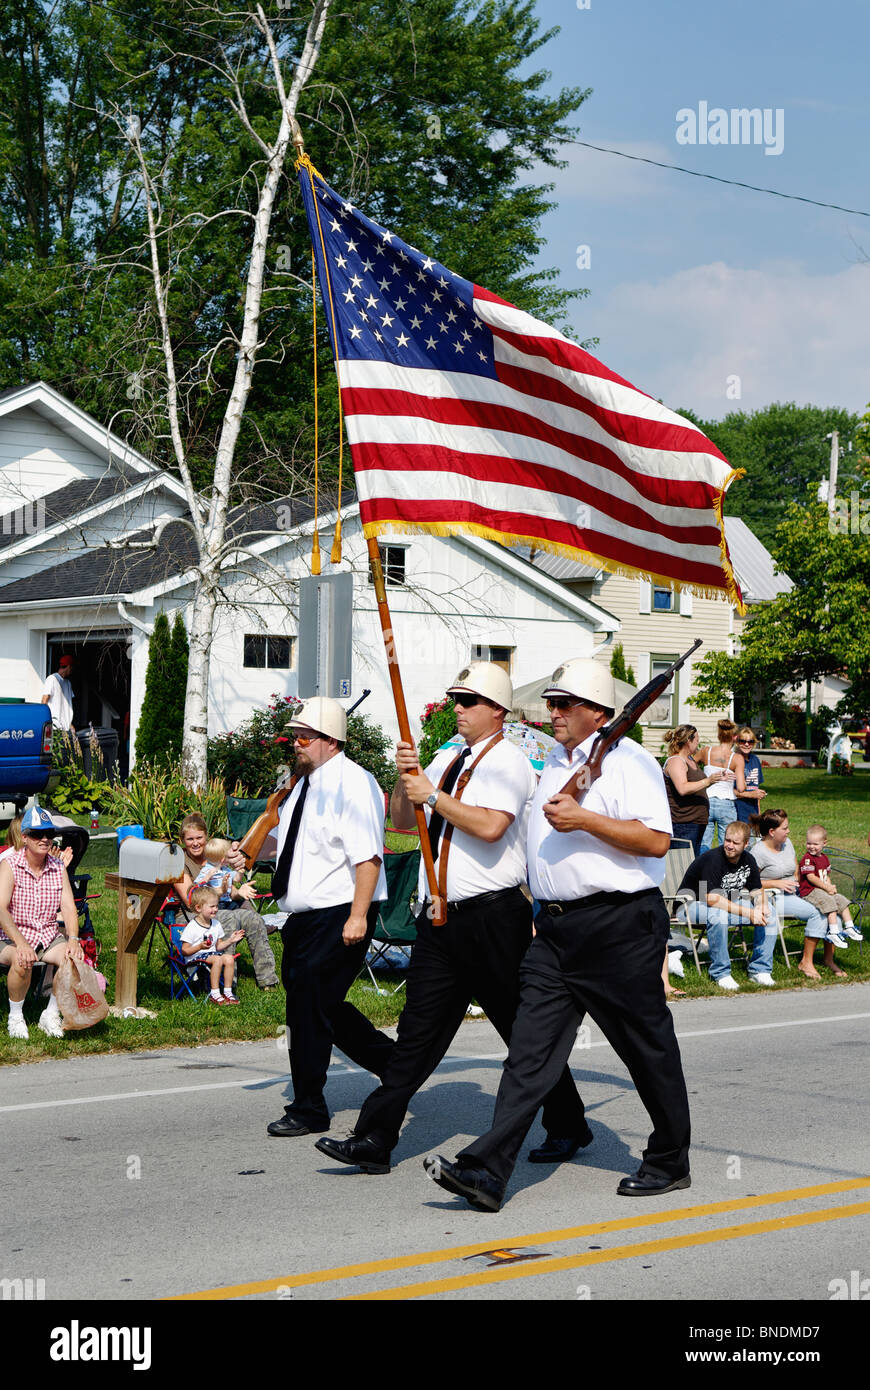 Honor Guard Carrying American Flag in Oldest Continuous Independence Day Parade in America in New Pekin, Indiana - Stock Image